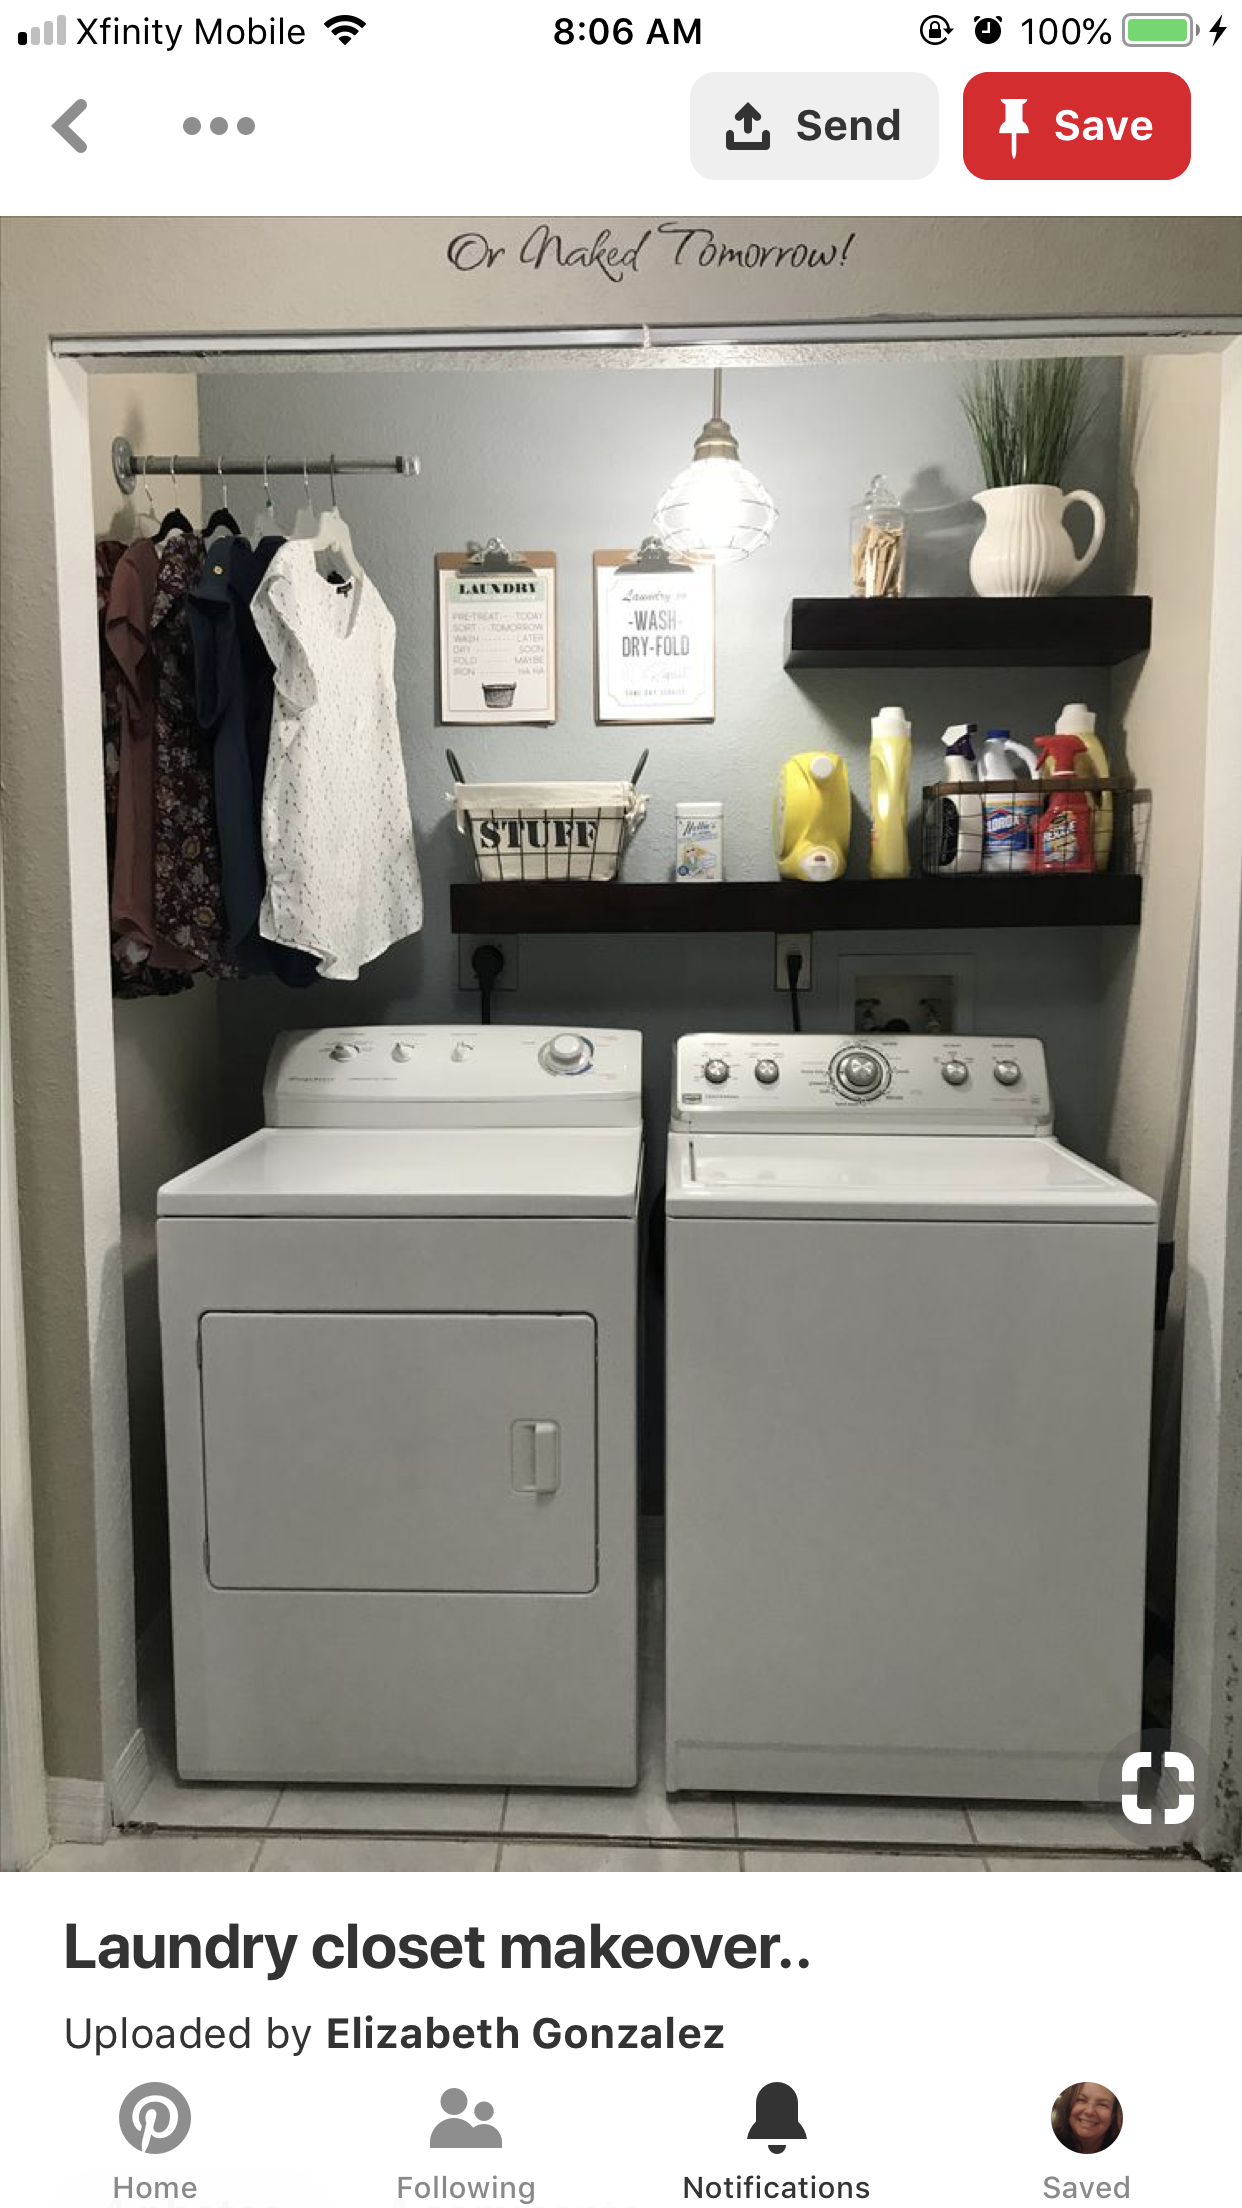 Add A Hanging Rod Inside The Closet Laundry Closet Makeover Laundry Room Diy Laundy Room